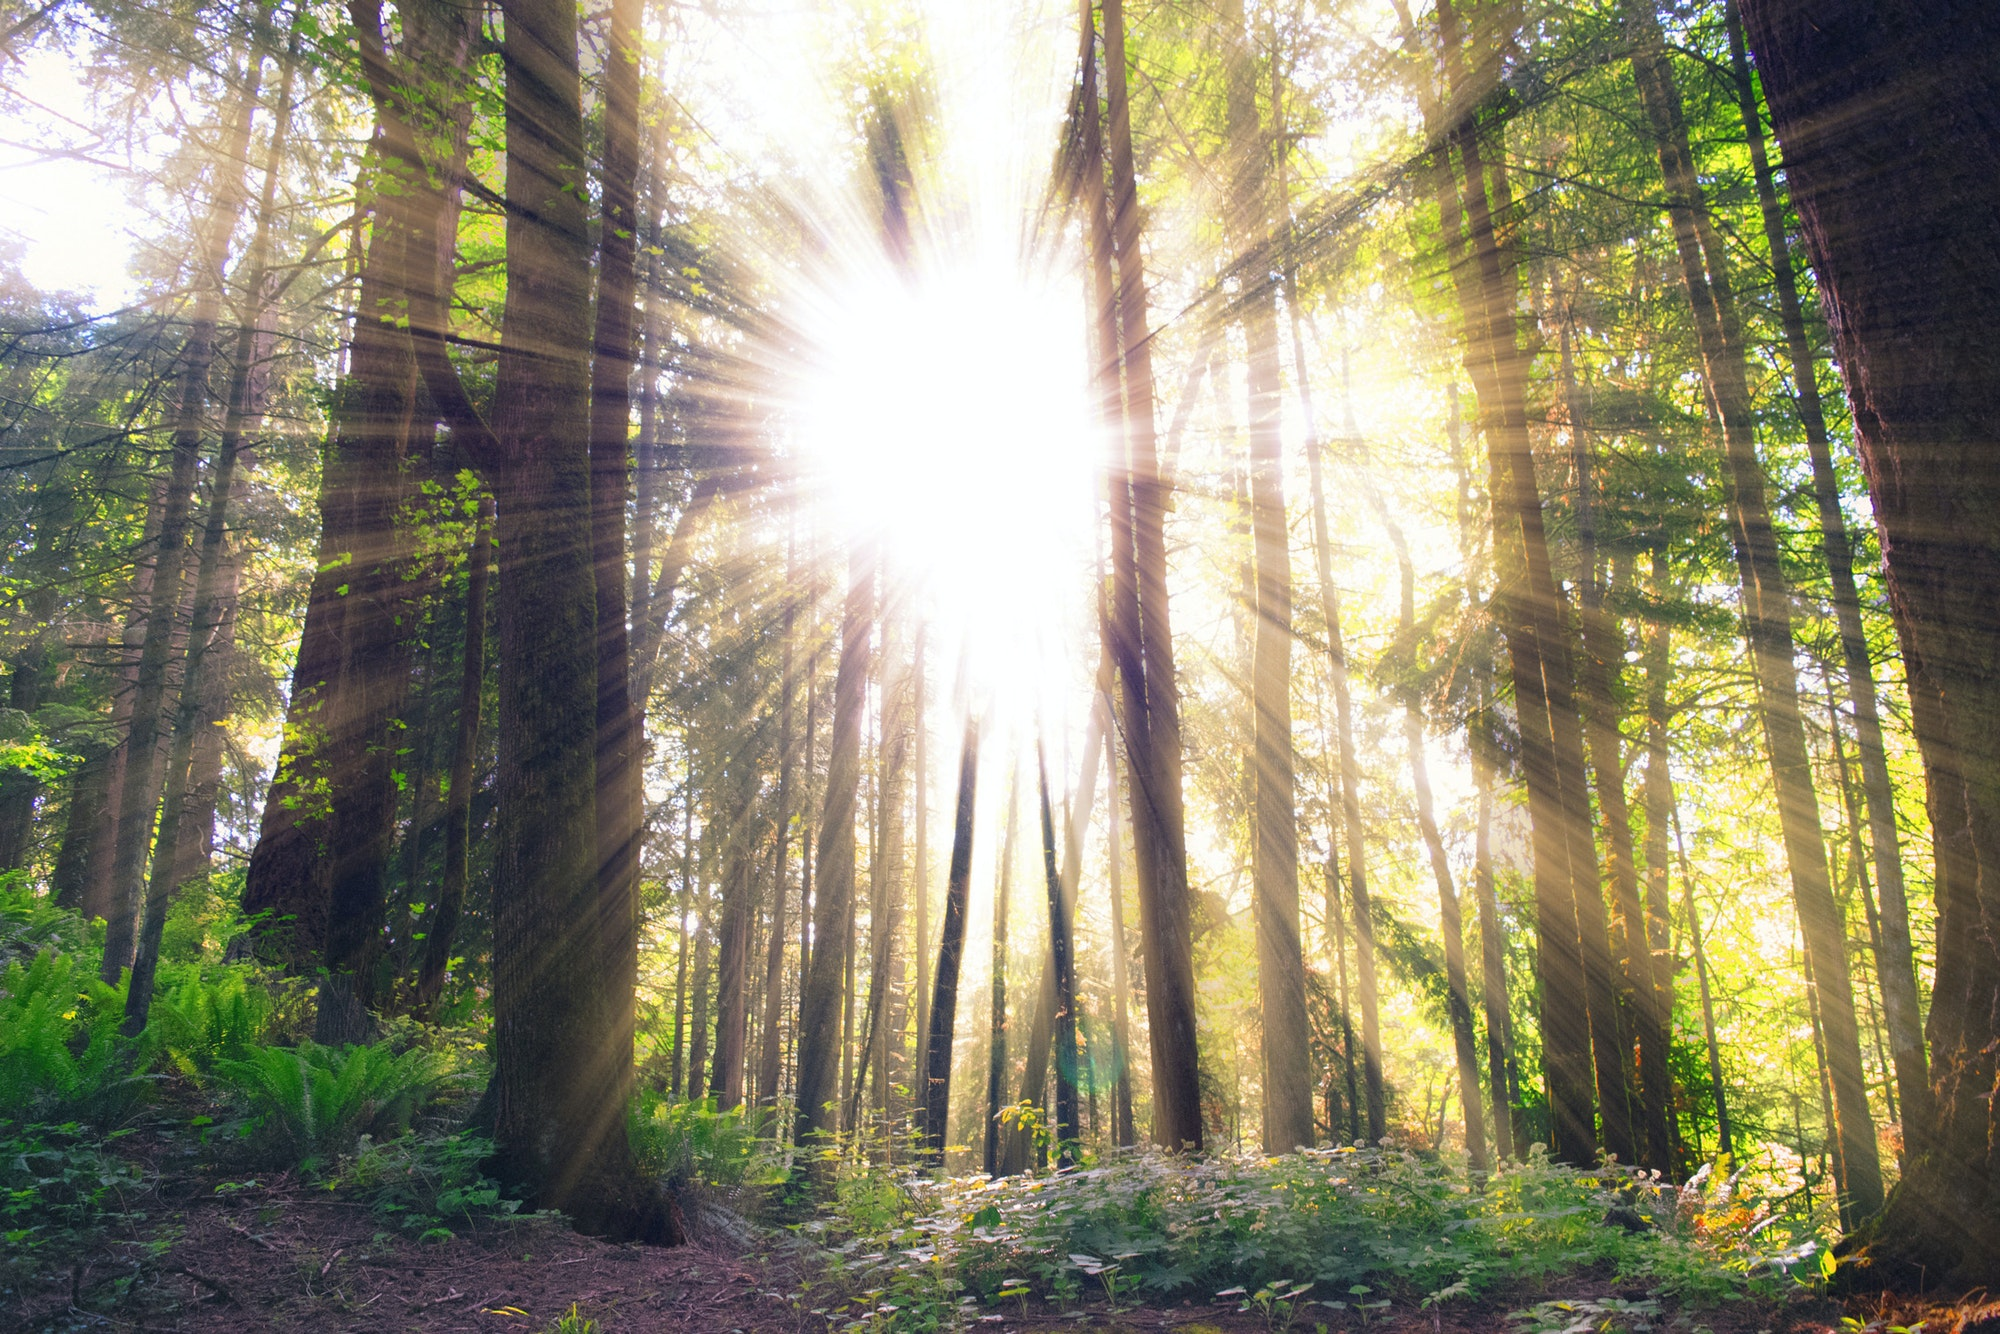 Sunlight, flare, and light through tall pine trees